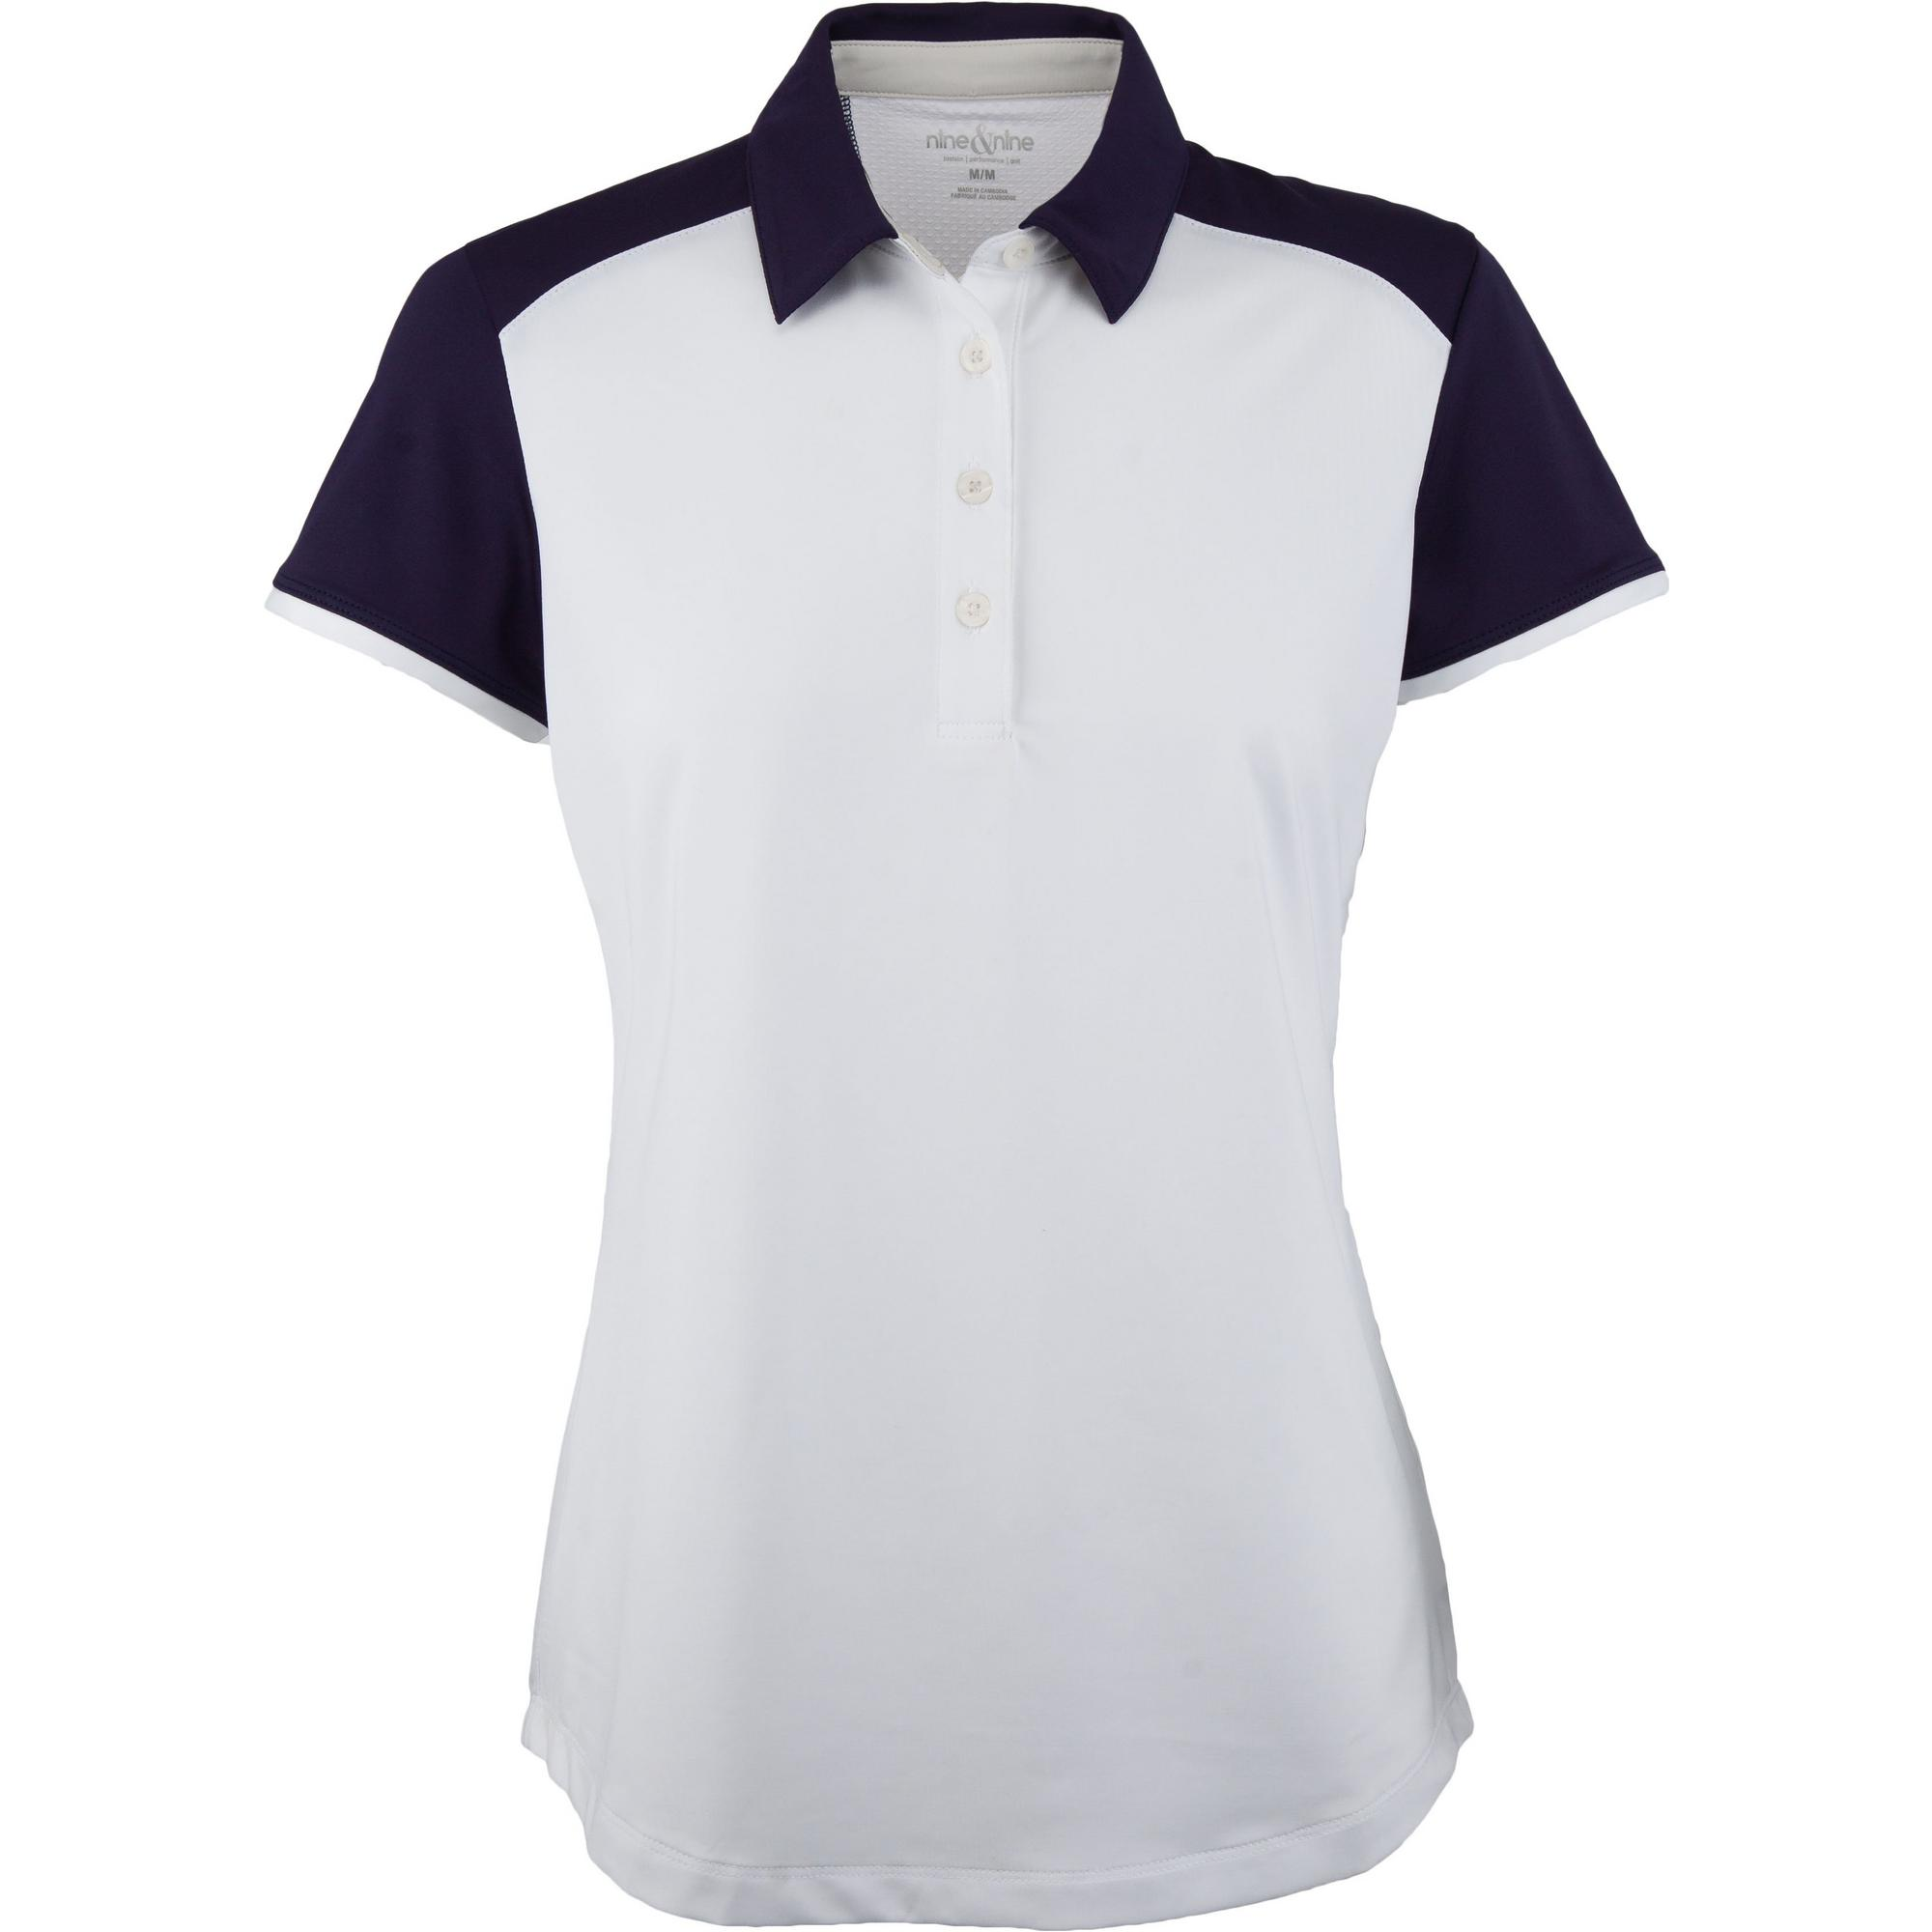 Women's Short Sleeve Solid Polo